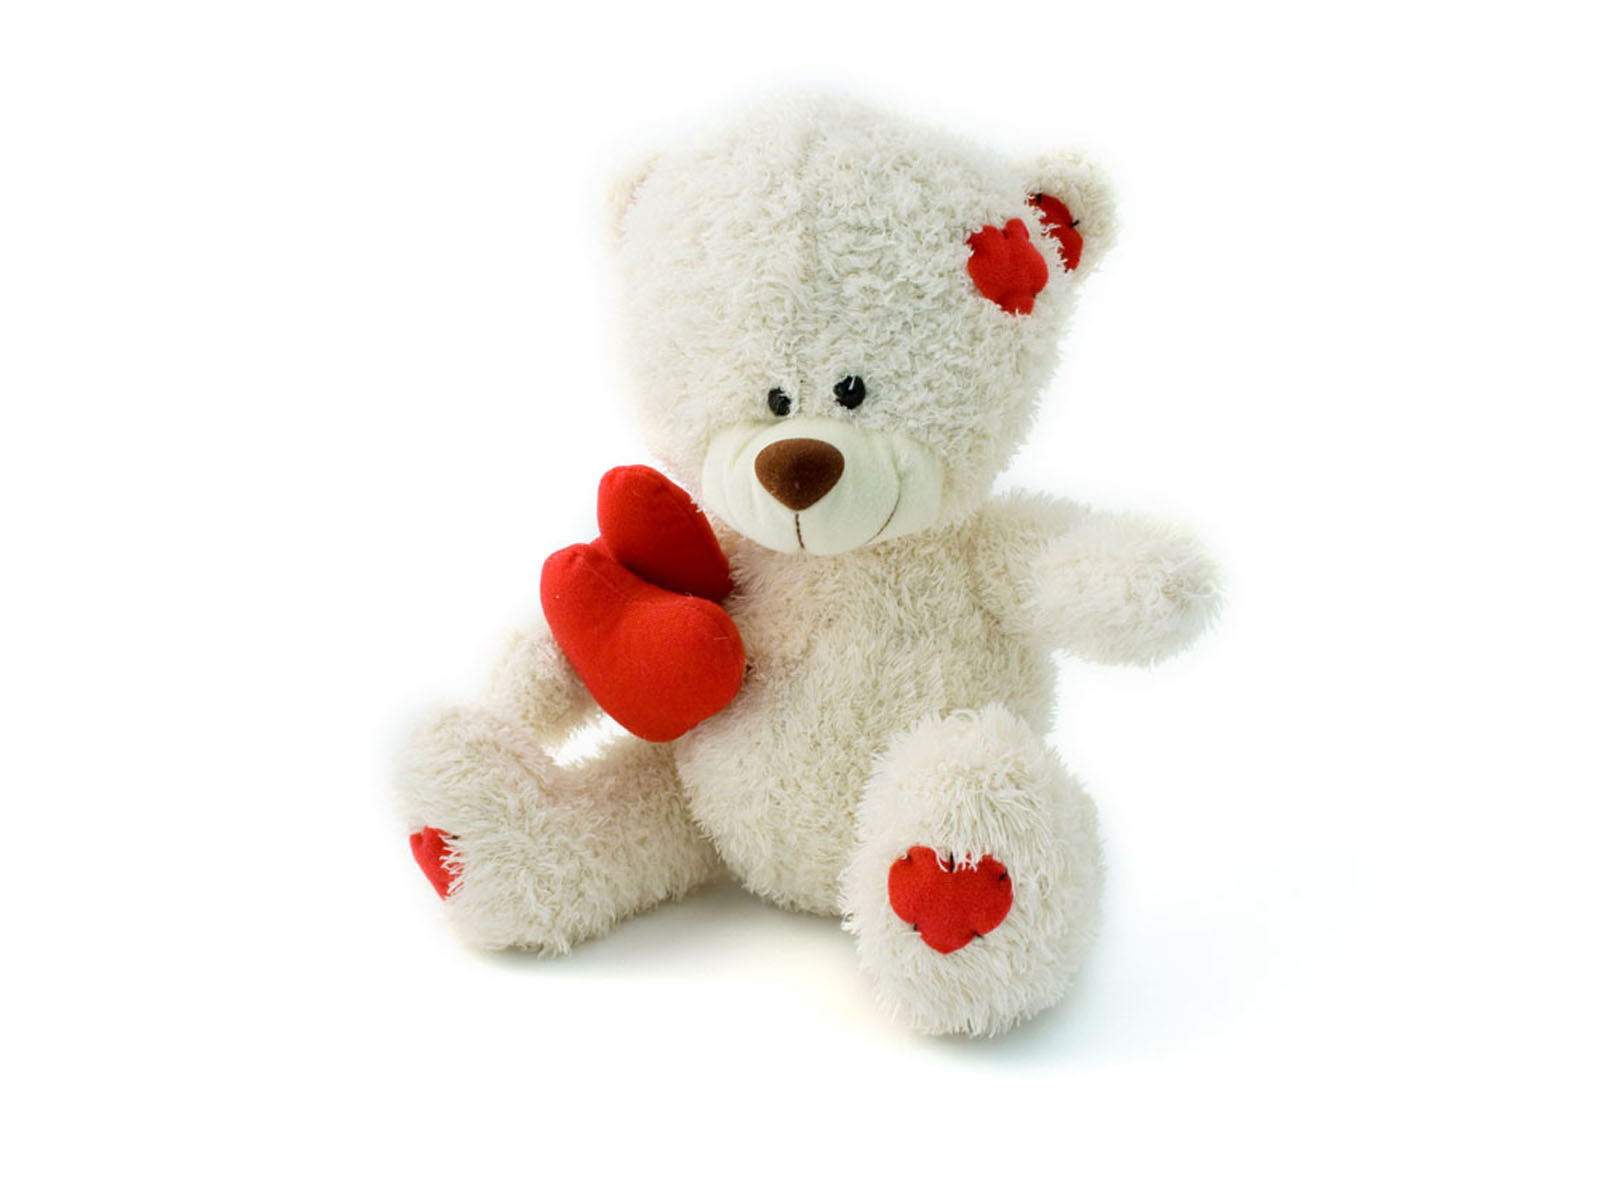 Cool and Cute Teddy Bear HD Wallpapers Free Download 2014 ...